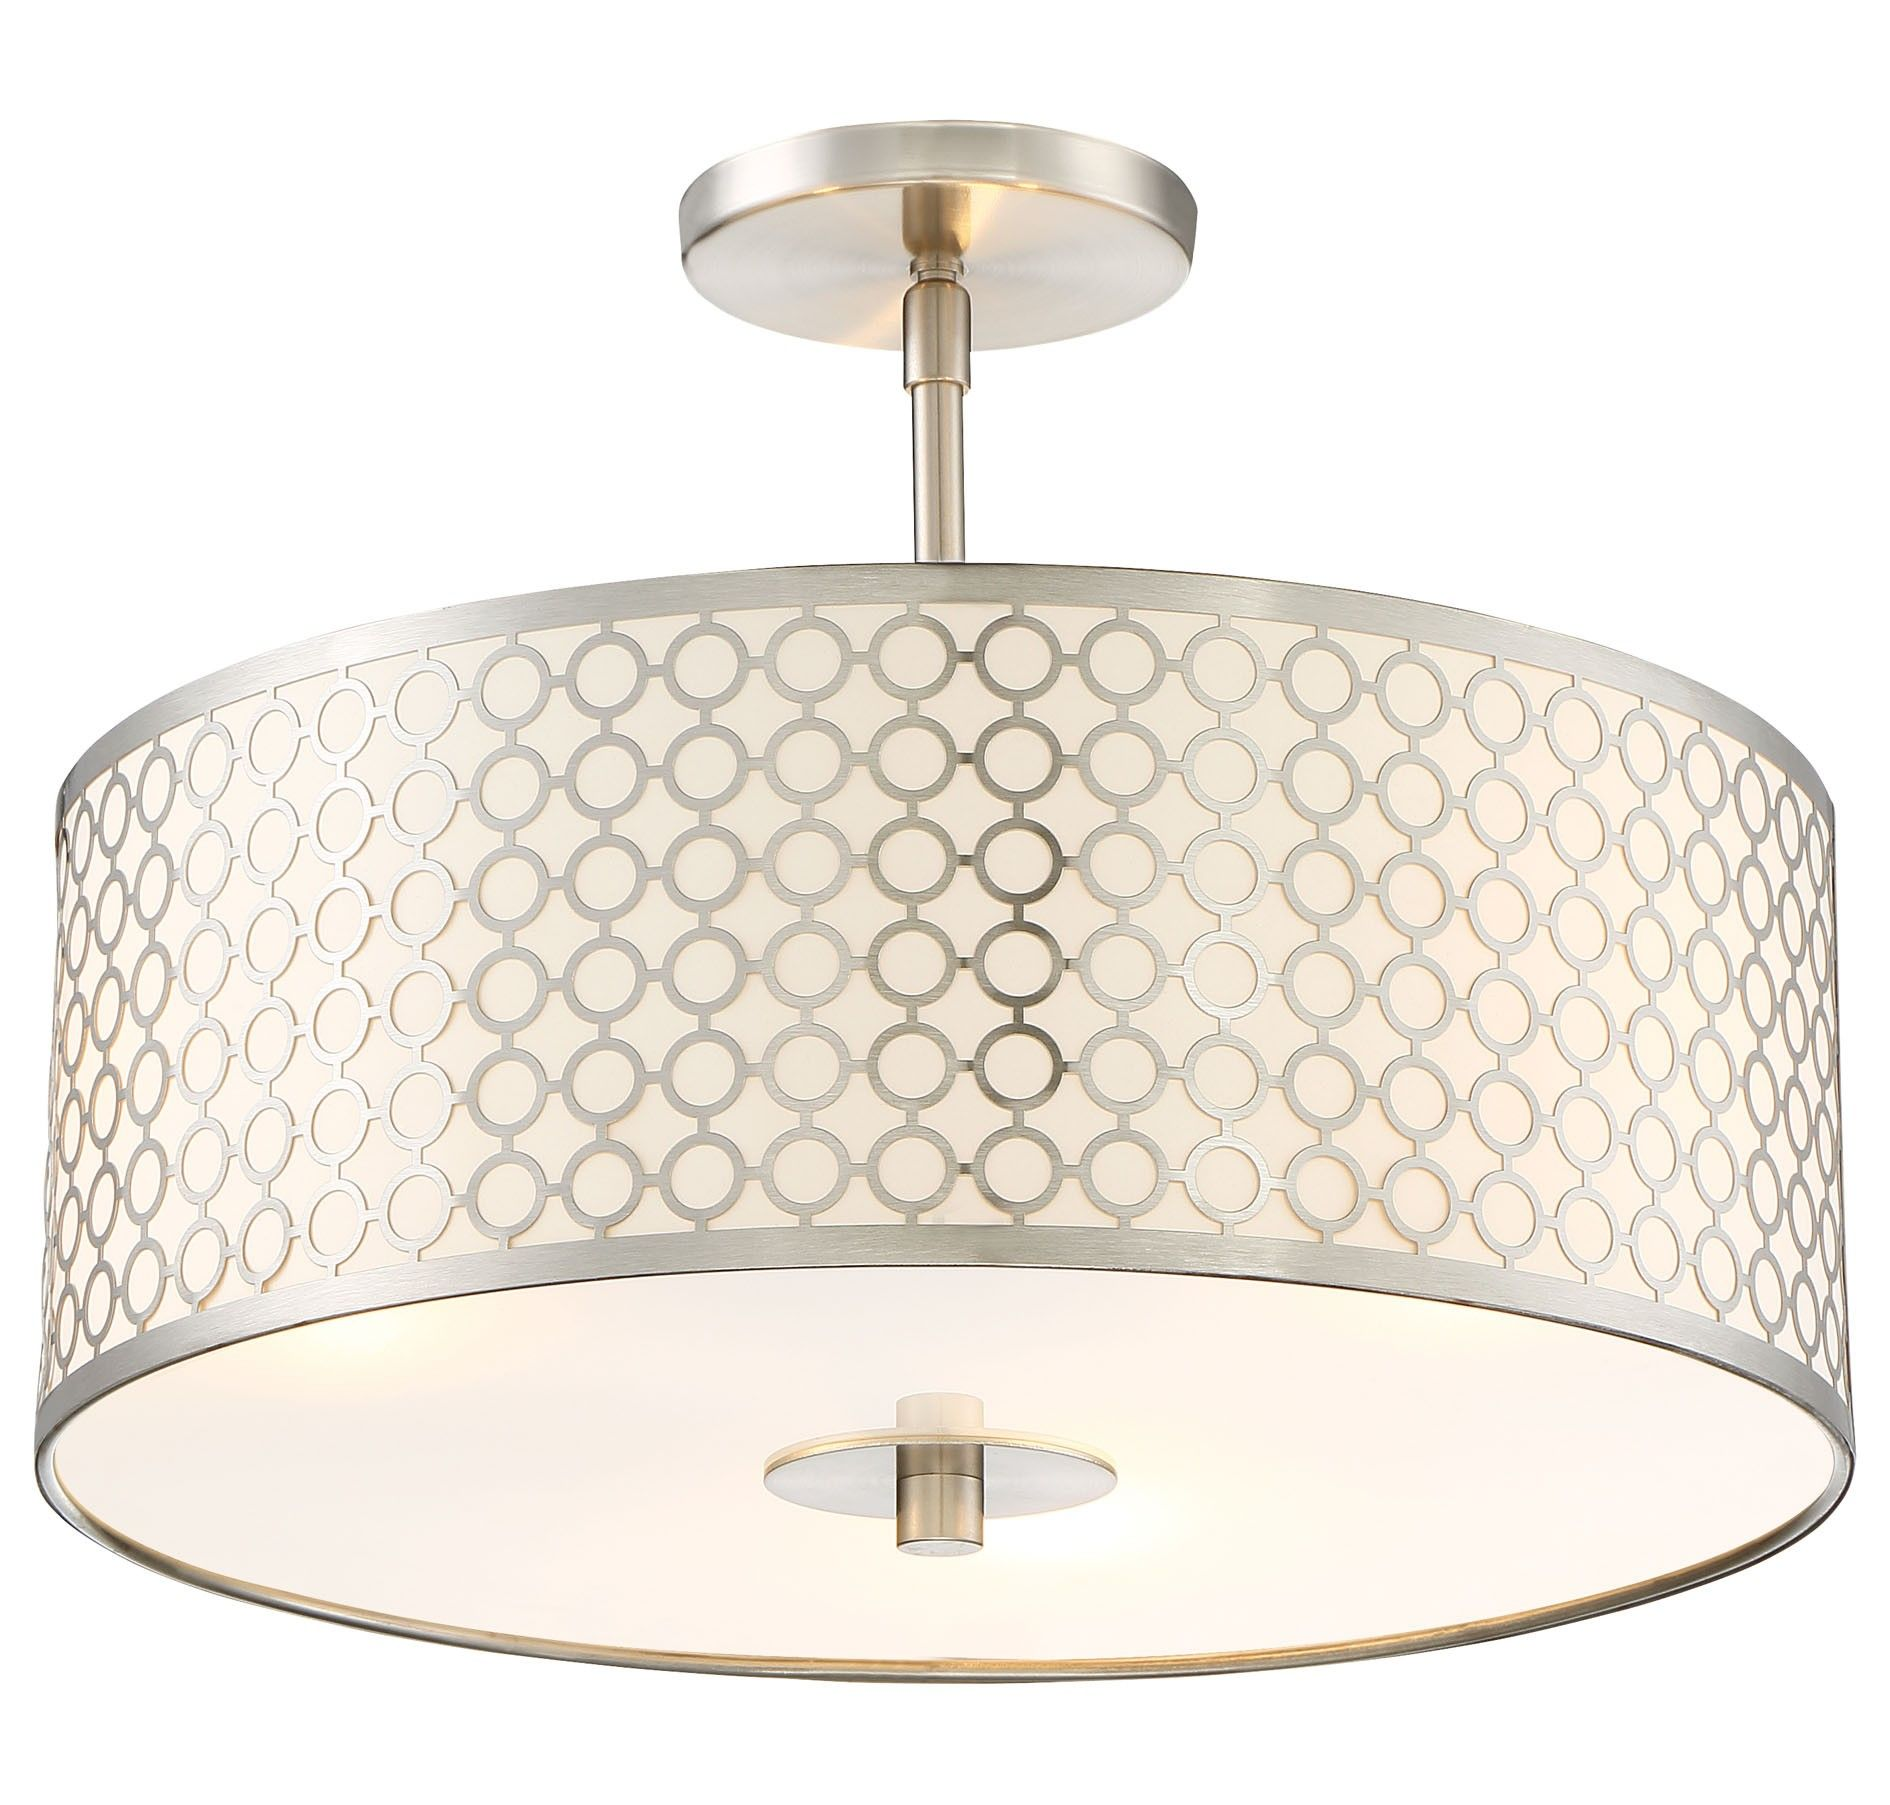 George Kovacs Dots 3 Light Semi Flush in Brushed Nickel